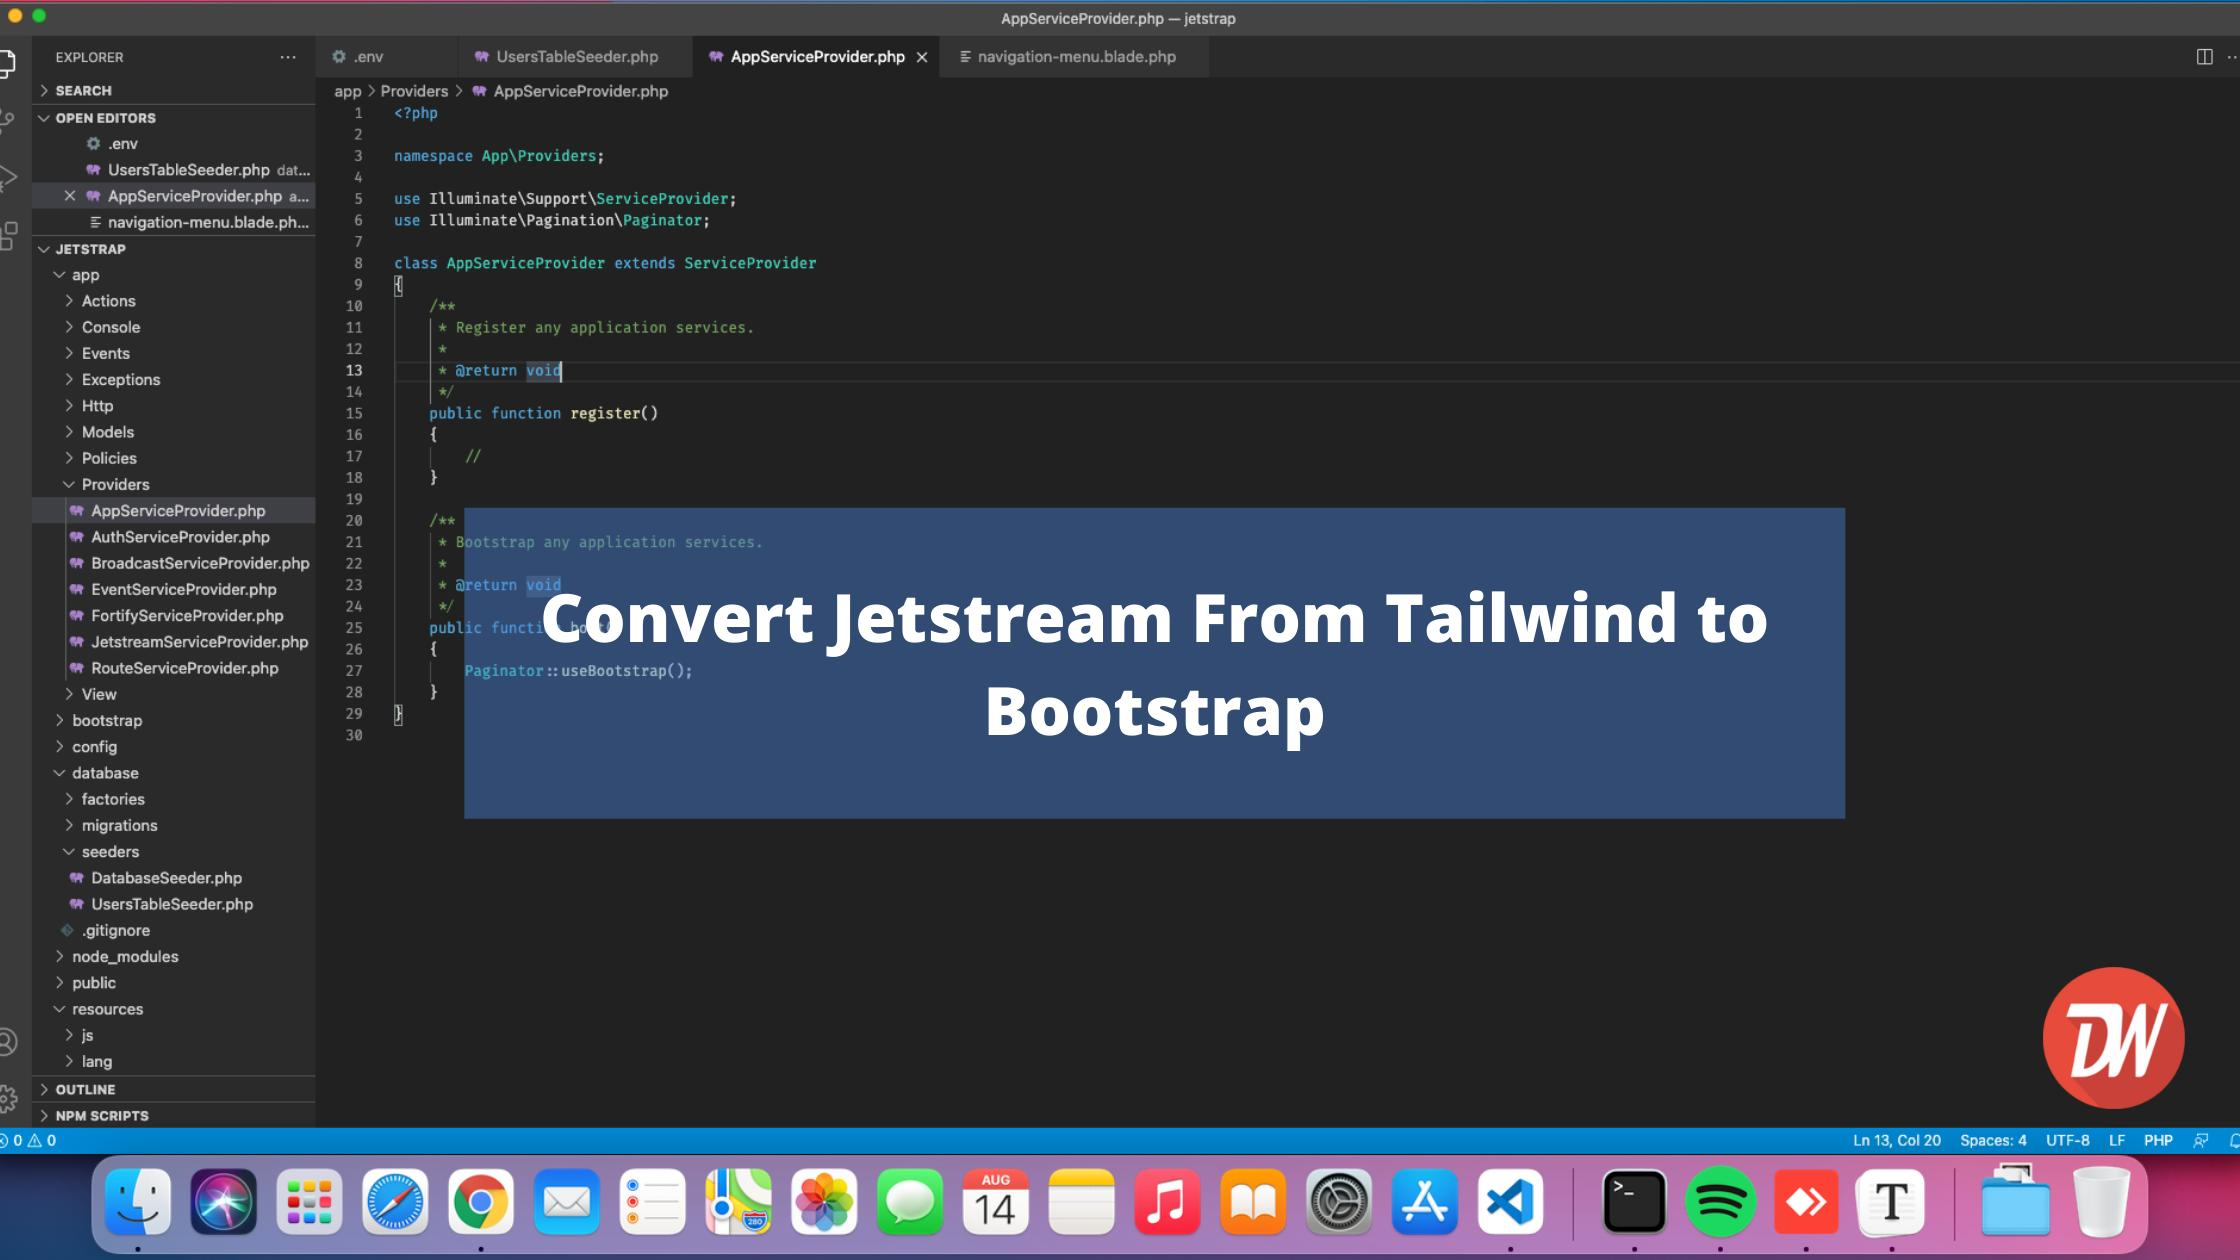 Convert Jetstream From Tailwind to Bootstrap